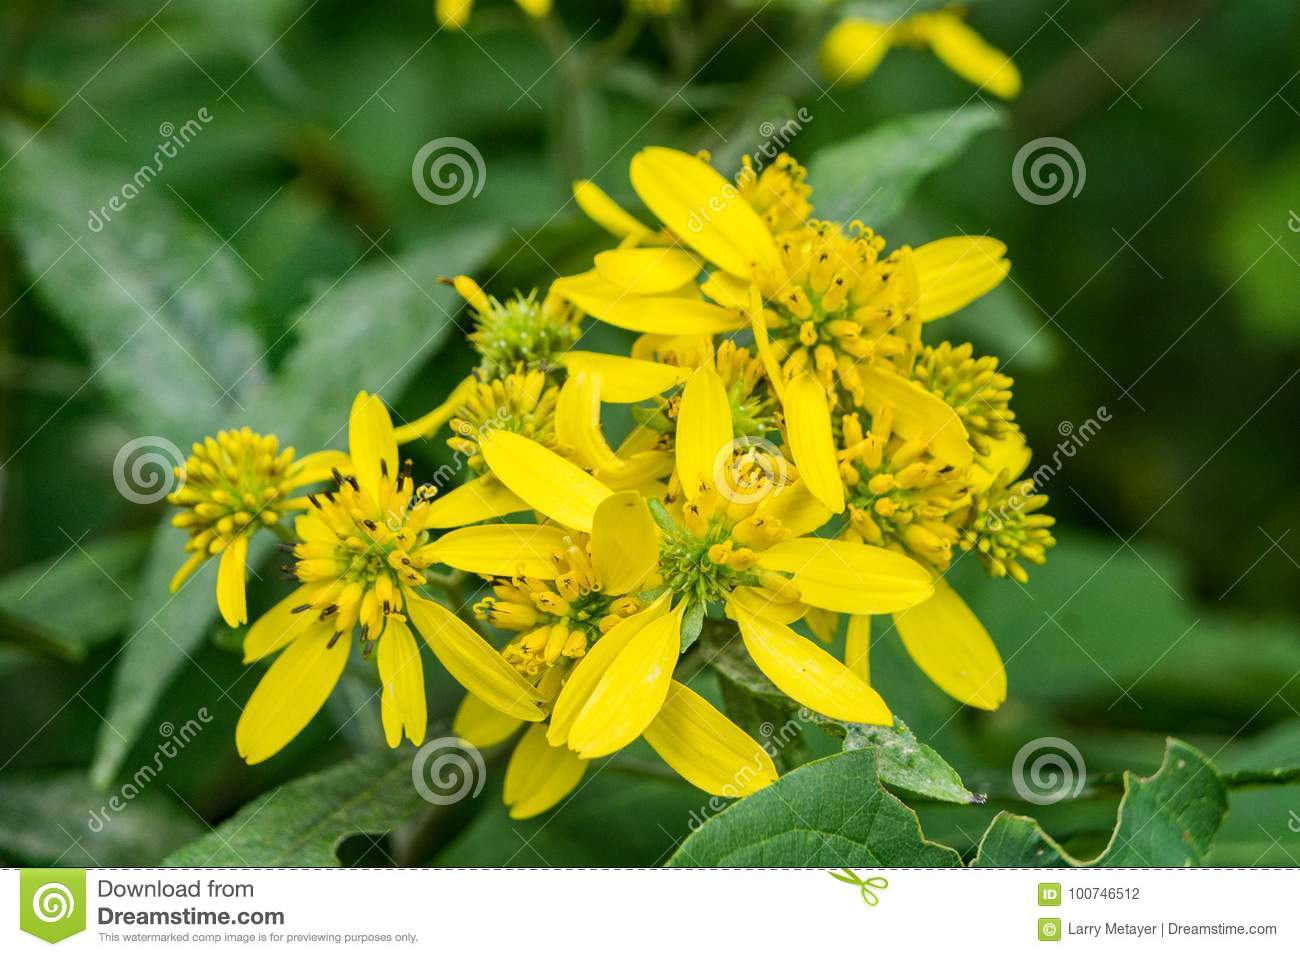 Wingstem verbesina alternifolia stock photo image of bloom download comp izmirmasajfo